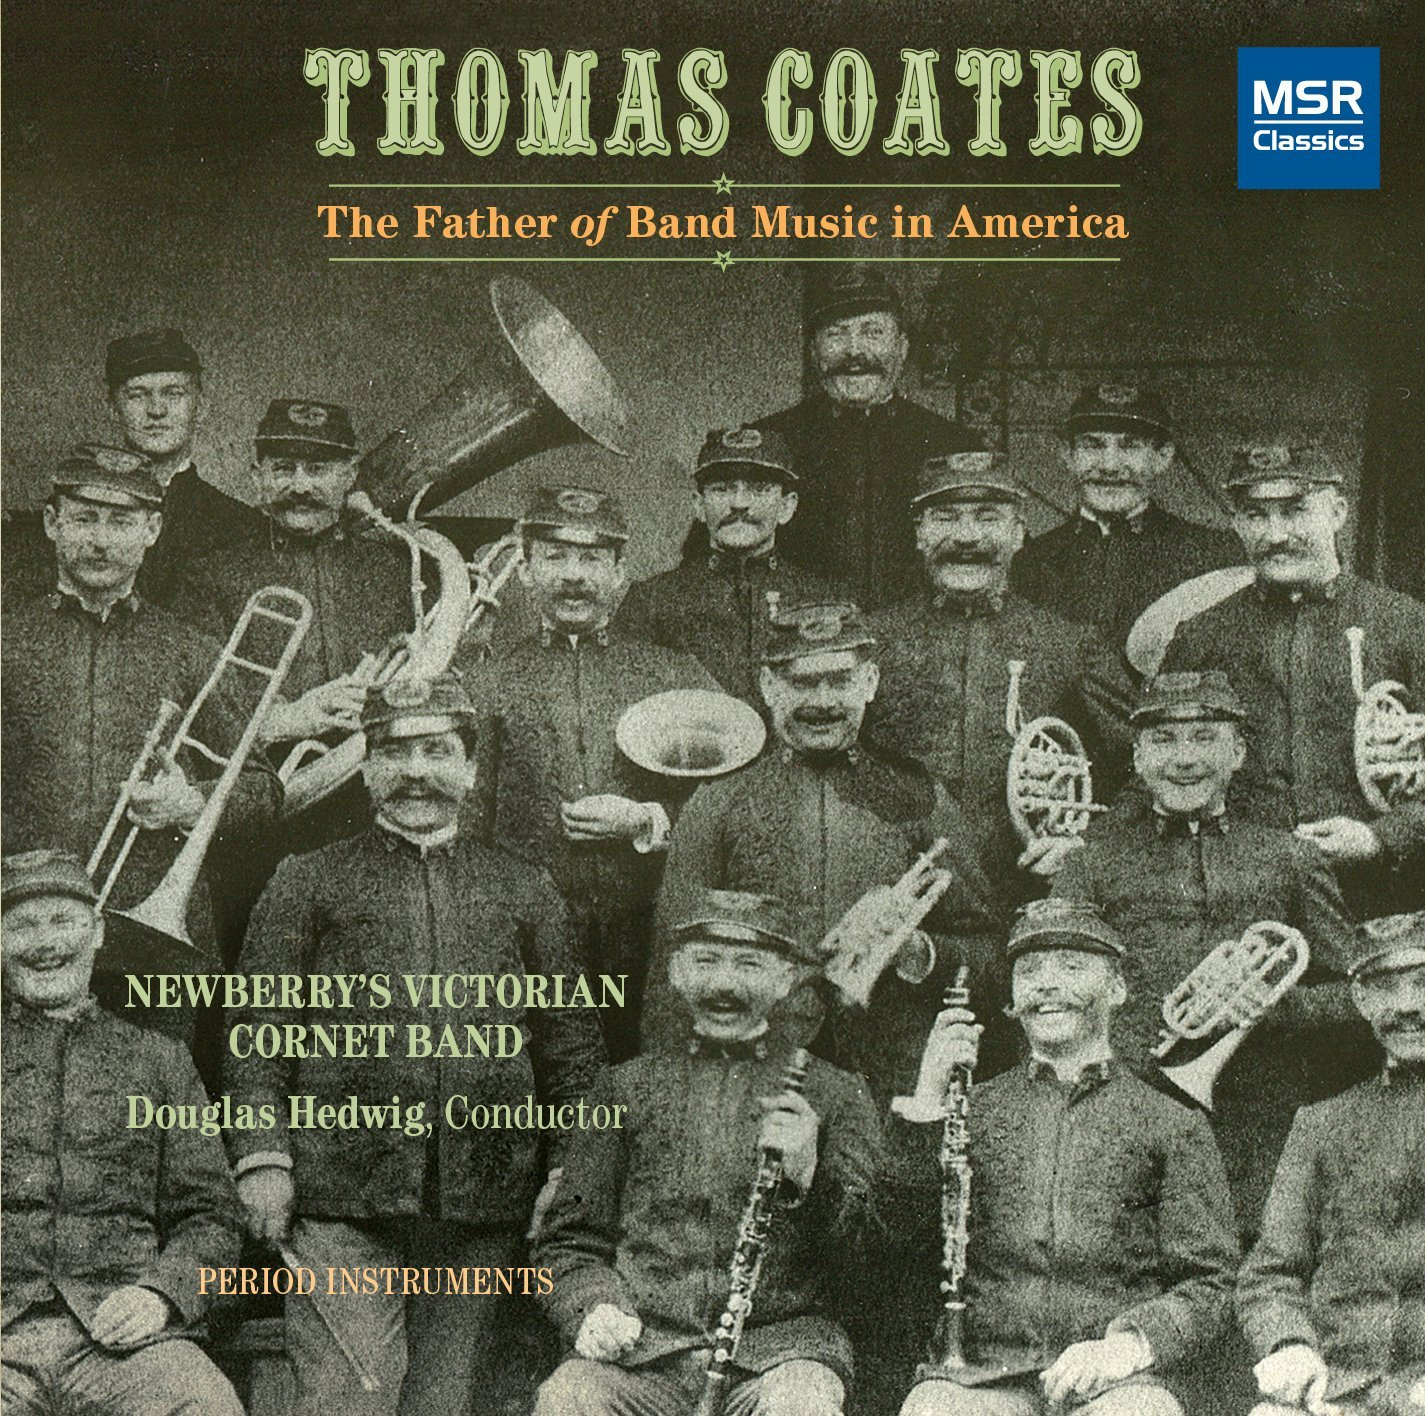 Thomas Coates by Newberry's Victorian Cornet Band